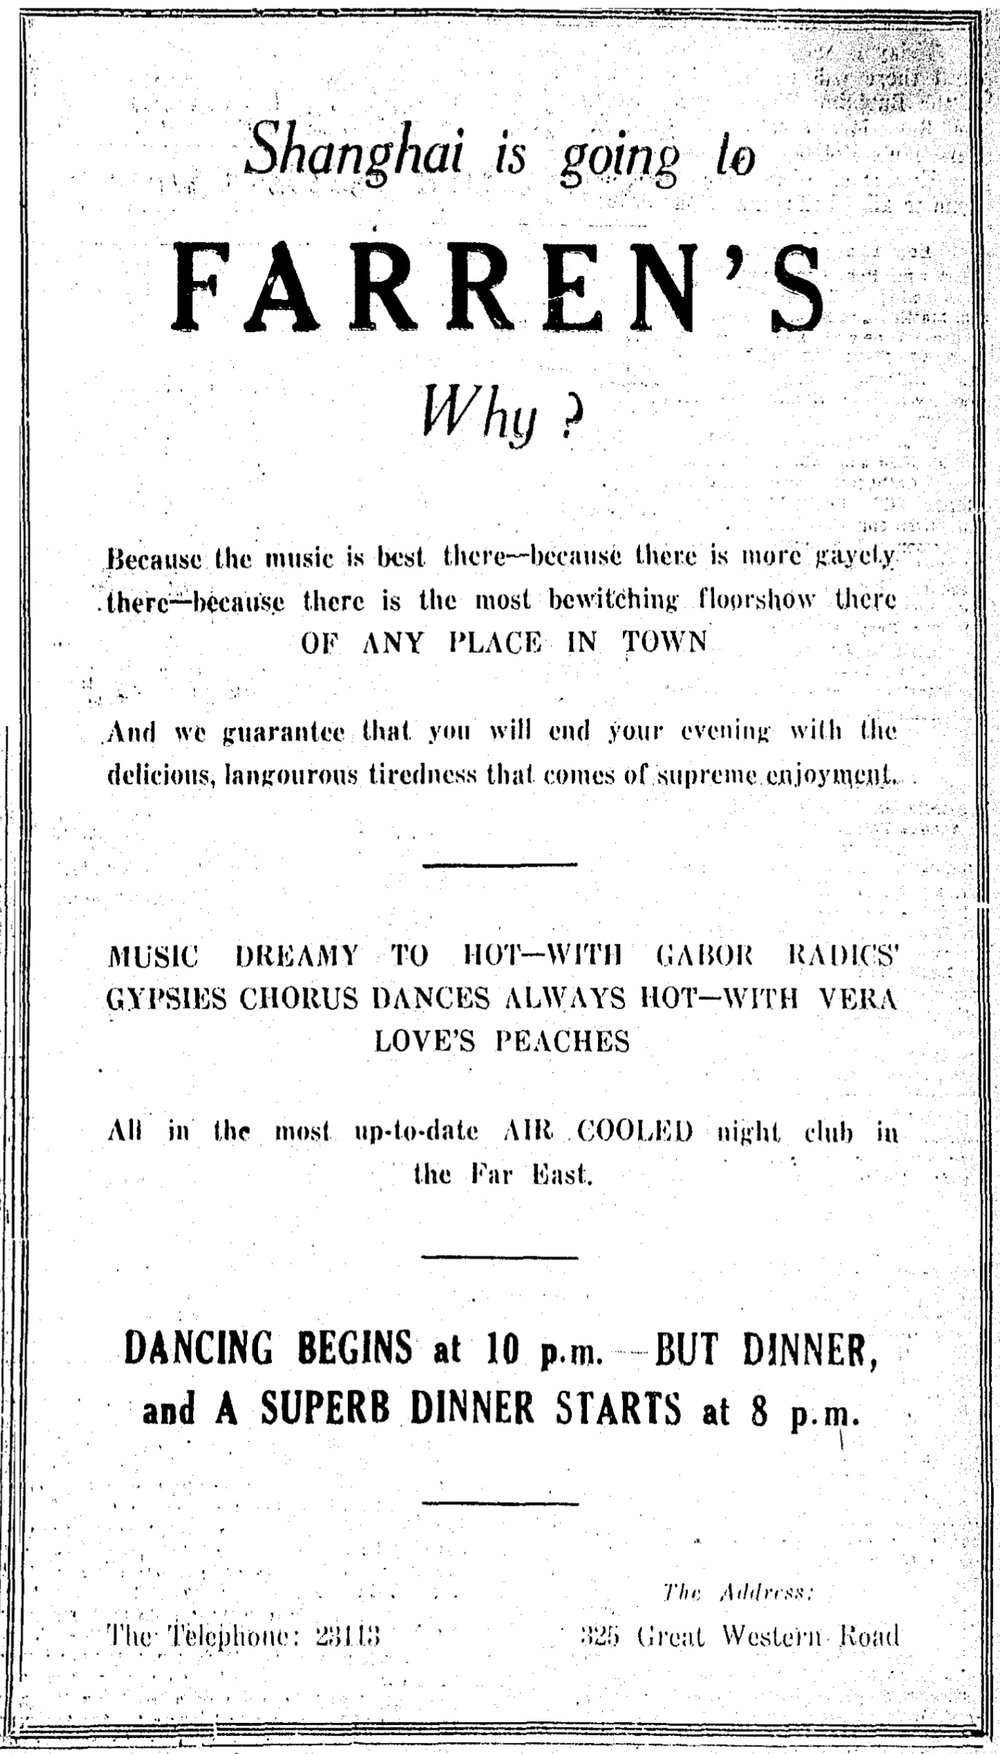 Ad for Farren's nightclub appearing in  the China Press  on 27 June 1937